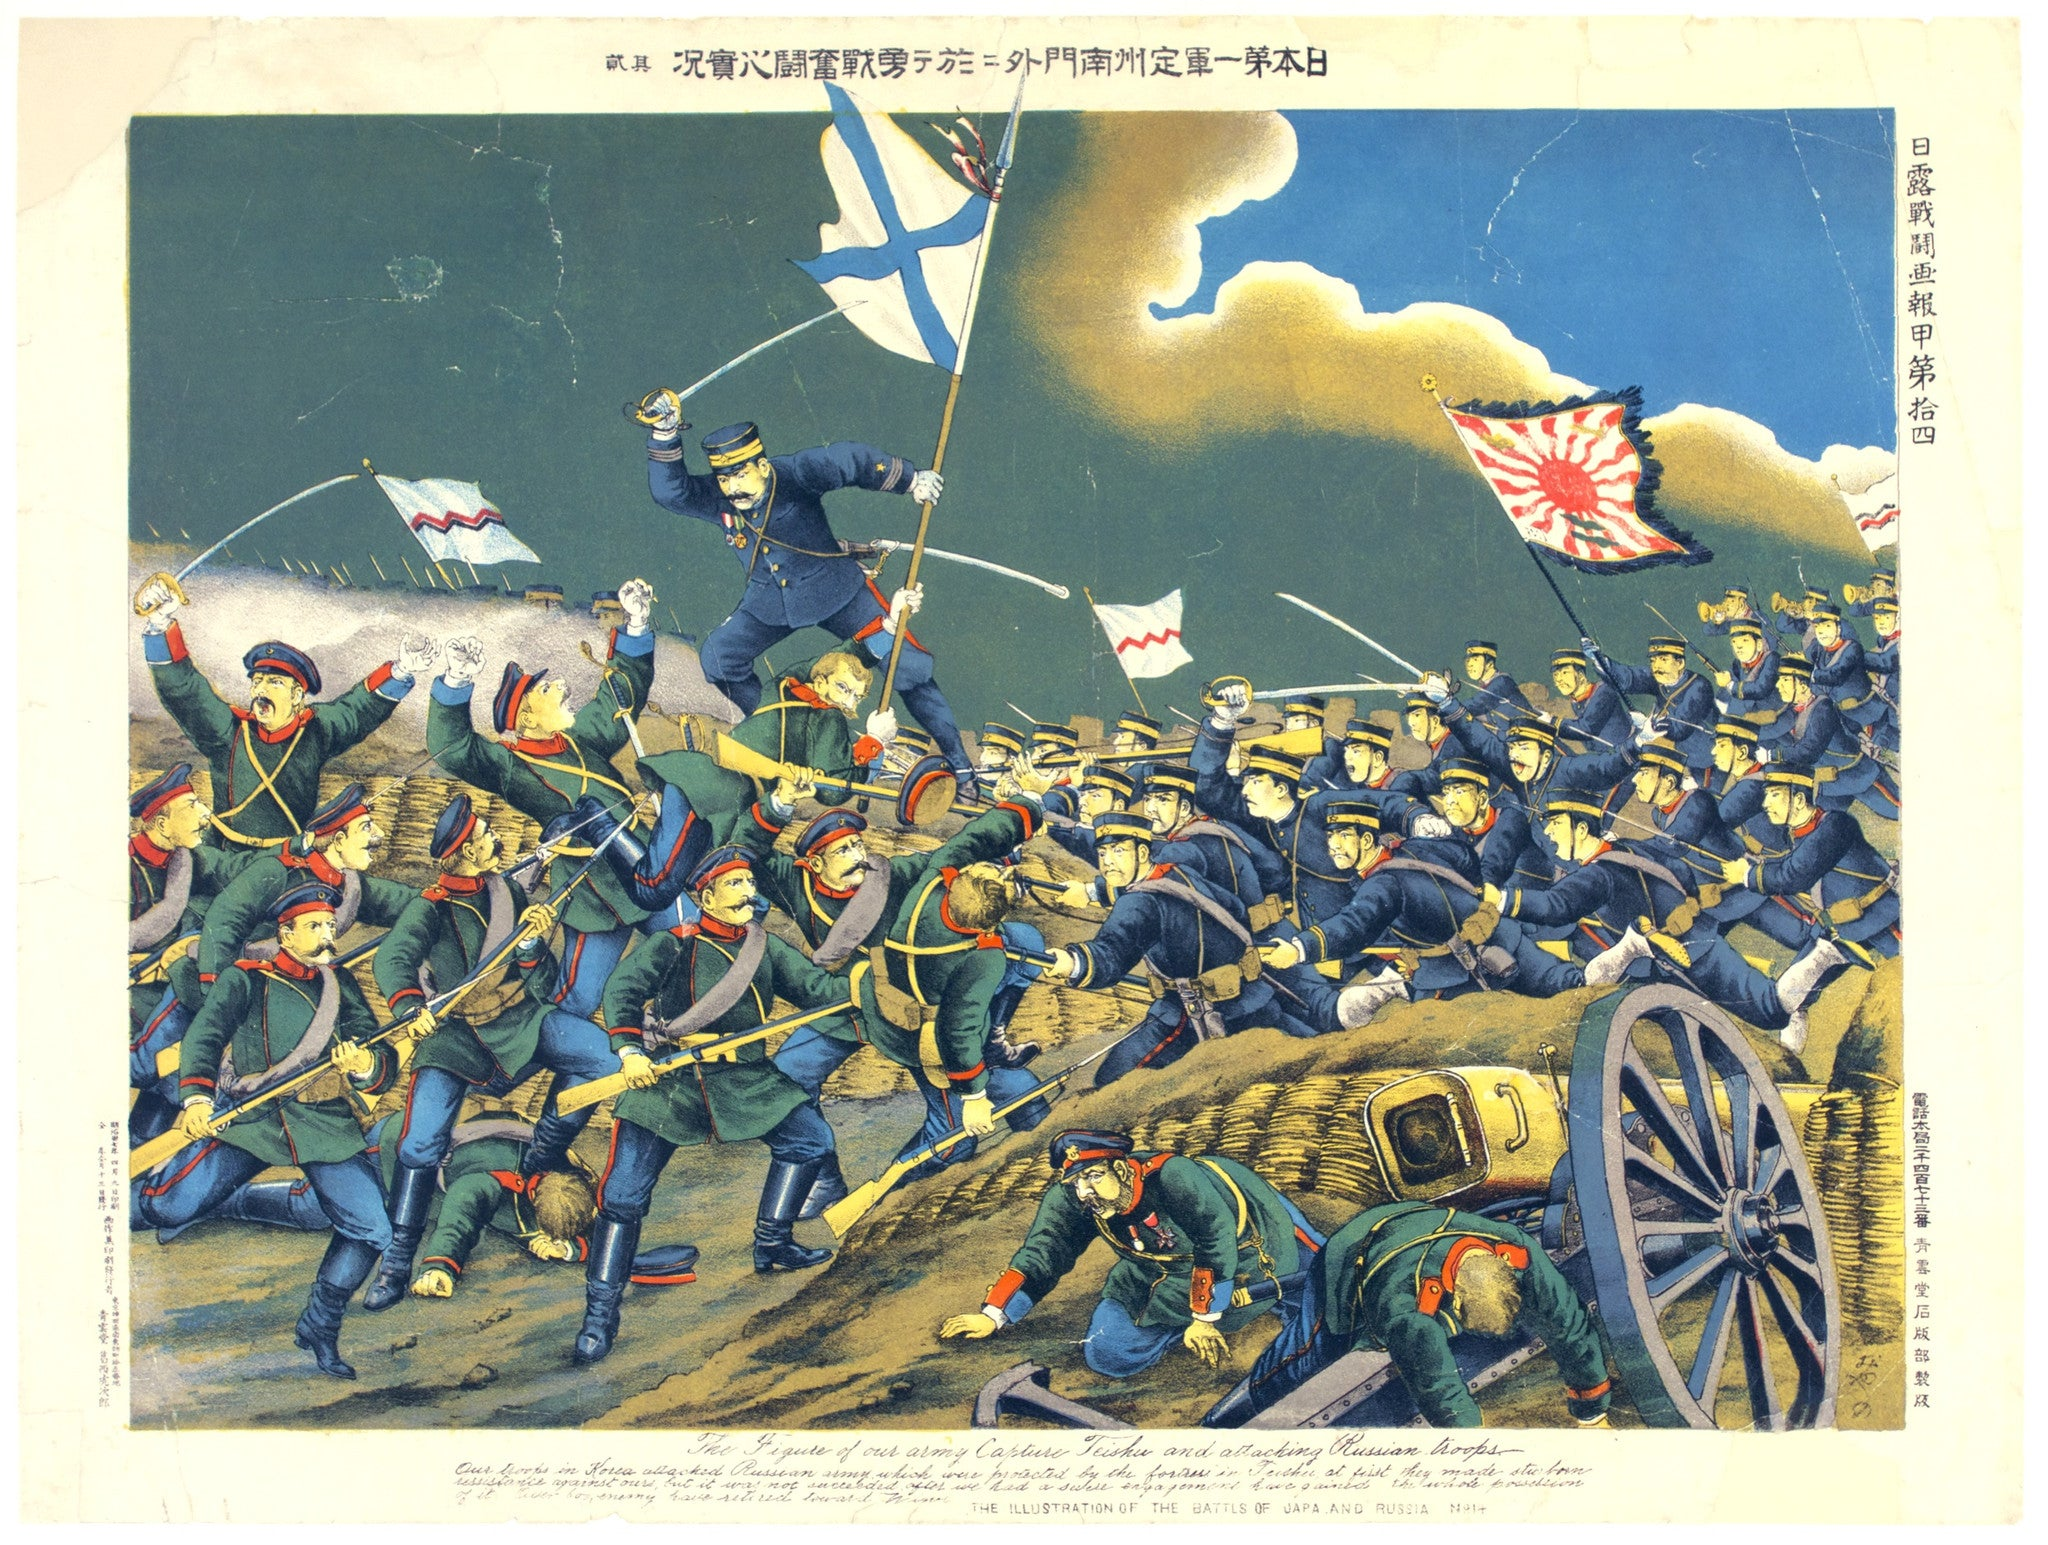 Russian and Japanese Troops at War